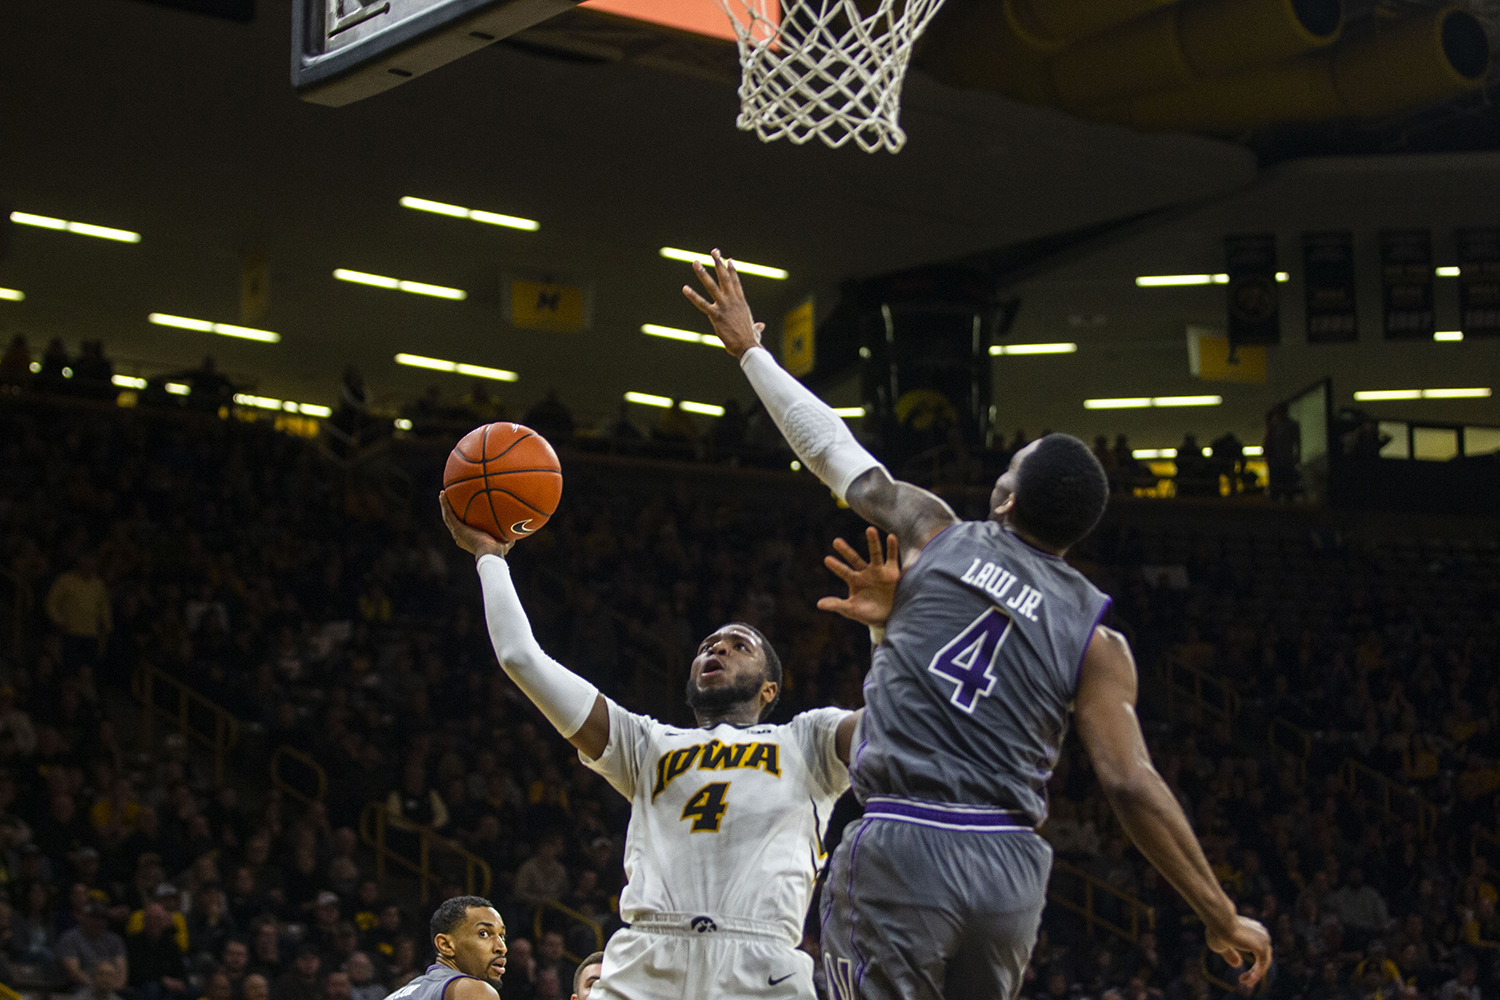 Iowa+guard+Isaiah+Moss+attempts+a+layup++during+the+Iowa%2FNorthwestern+men%27s+basketball+game+at+Carver-Hawkeye+Arena+on+Sunday%2C+February+10%2C+2019.+The+Hawkeyes+defeated+the+Wildcats%2C+80-79.+